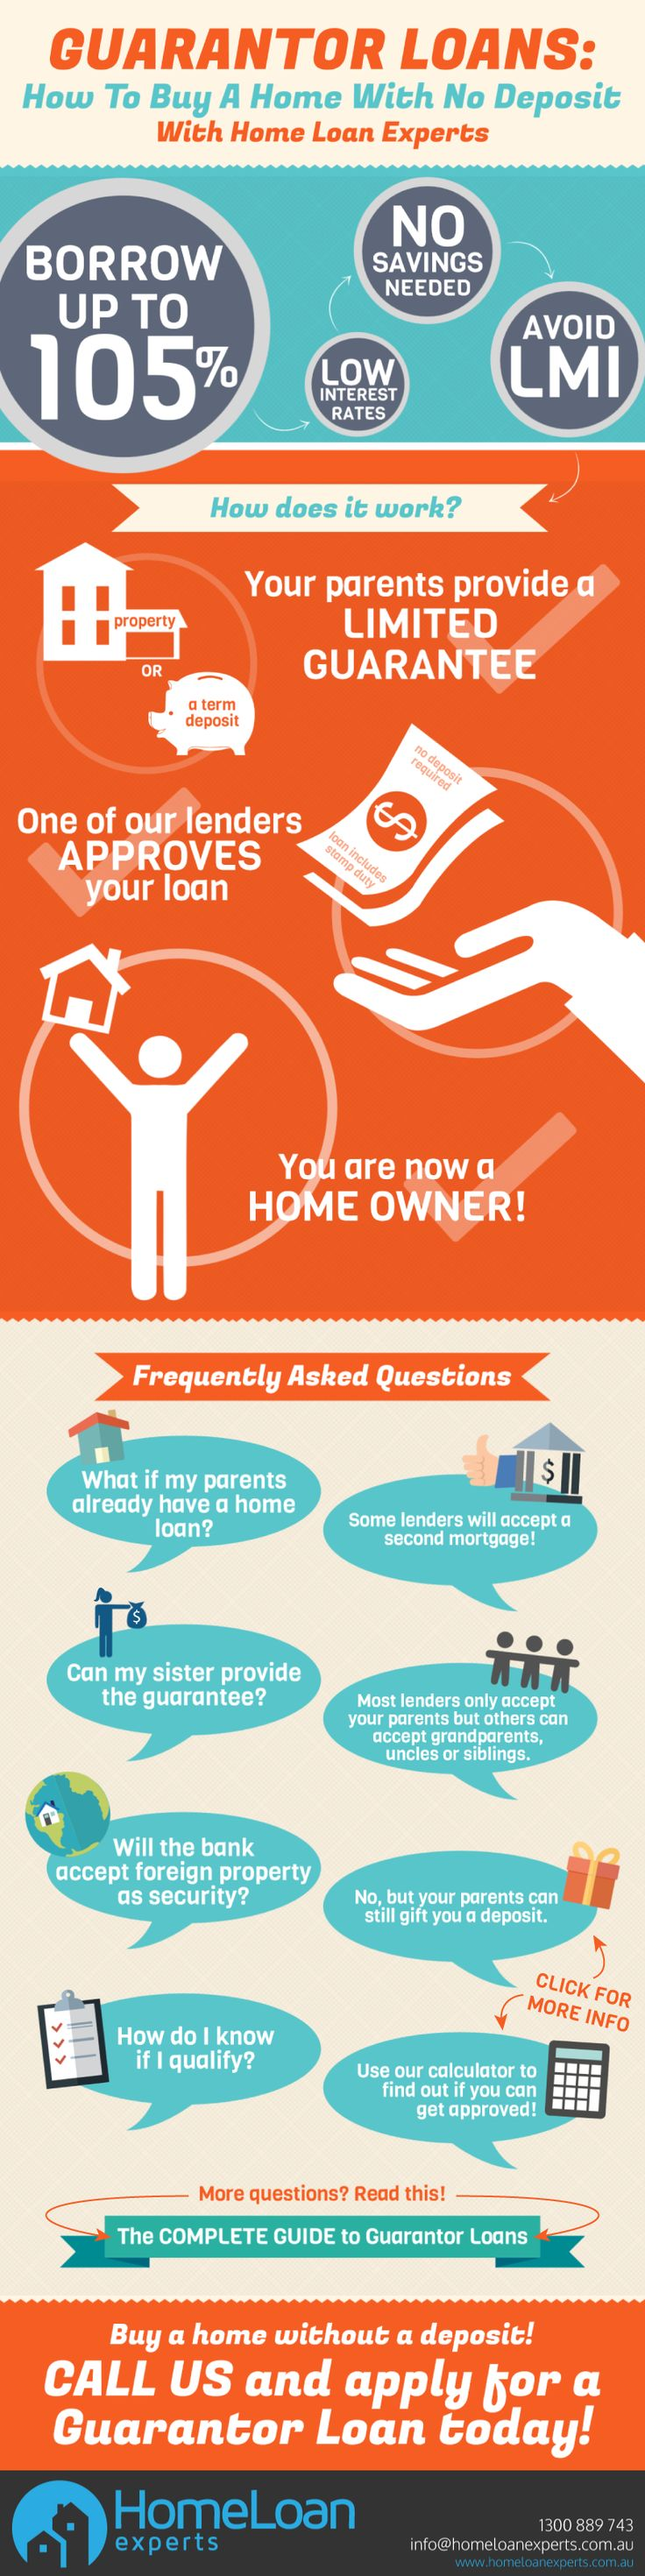 A Little Help From Your Parents Makes It Possible For You To Borrow 105% For